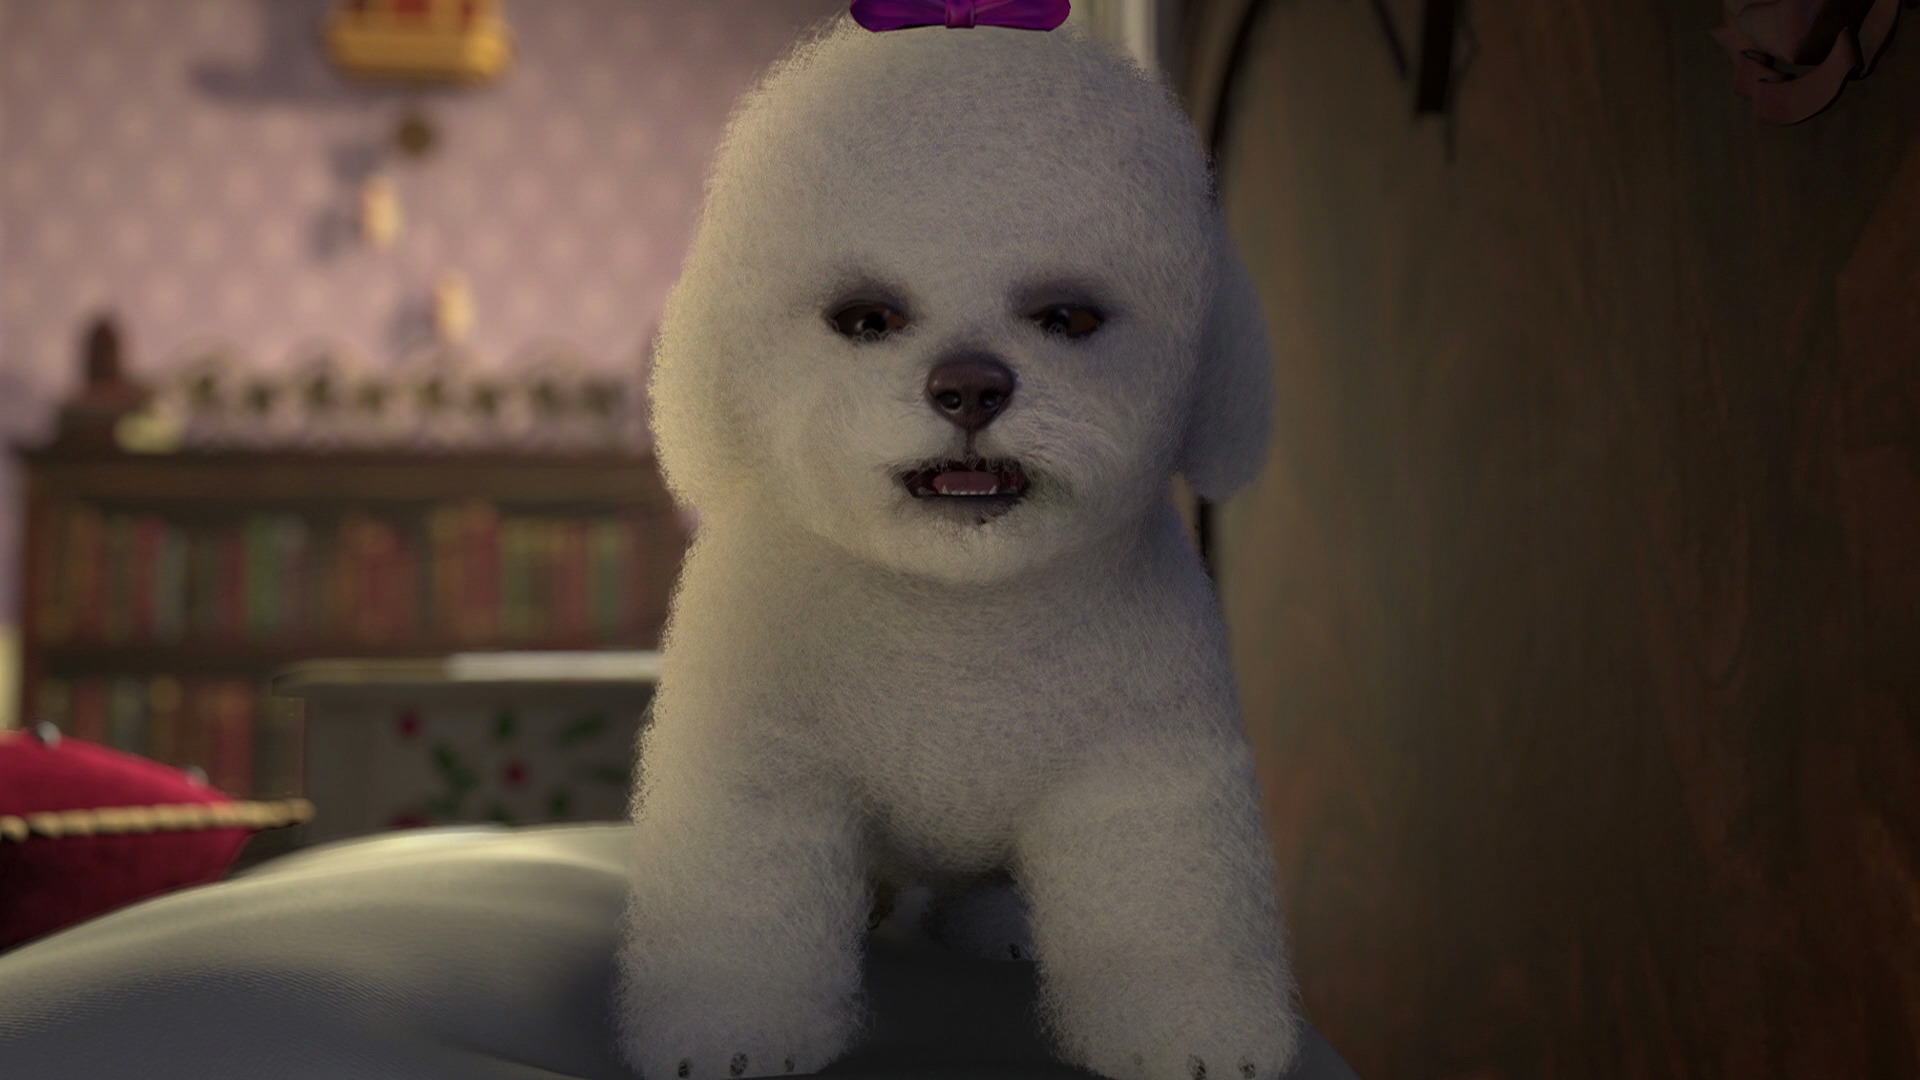 Puppy Dog (Shrek)